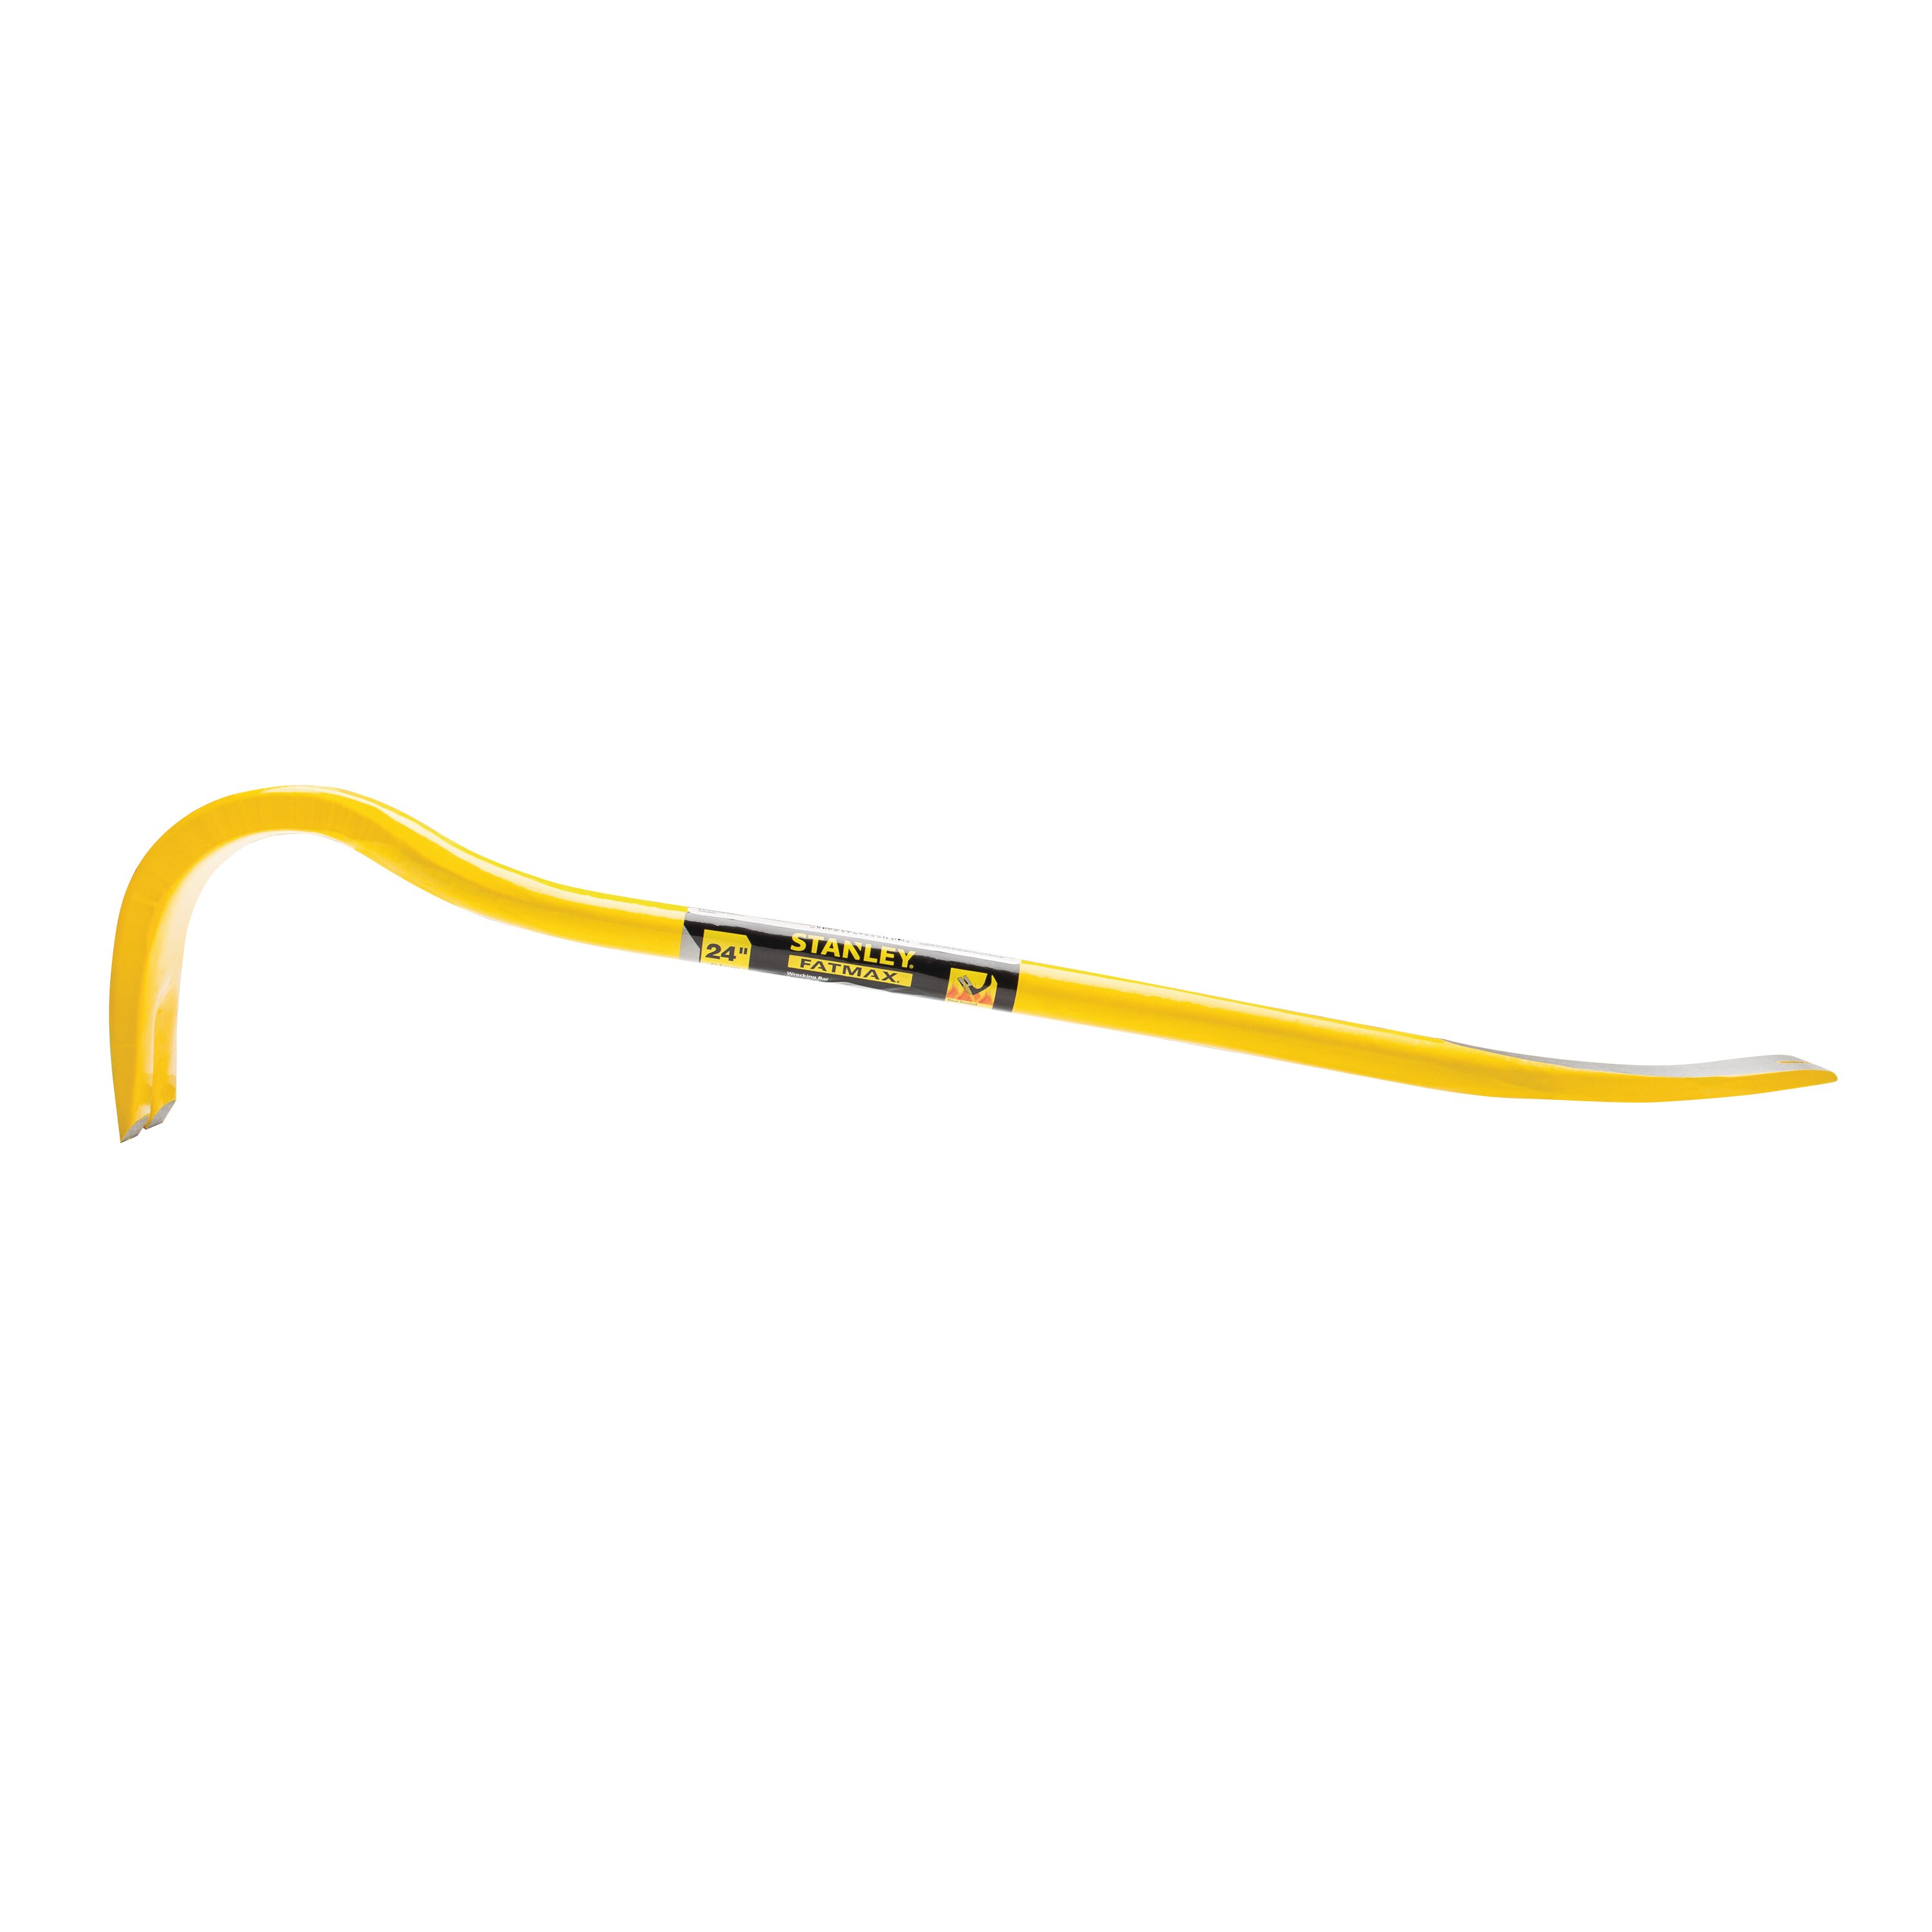 Stanley Tools - 24 in FATMAX Spring Steel Wrecking Bar - 55-503